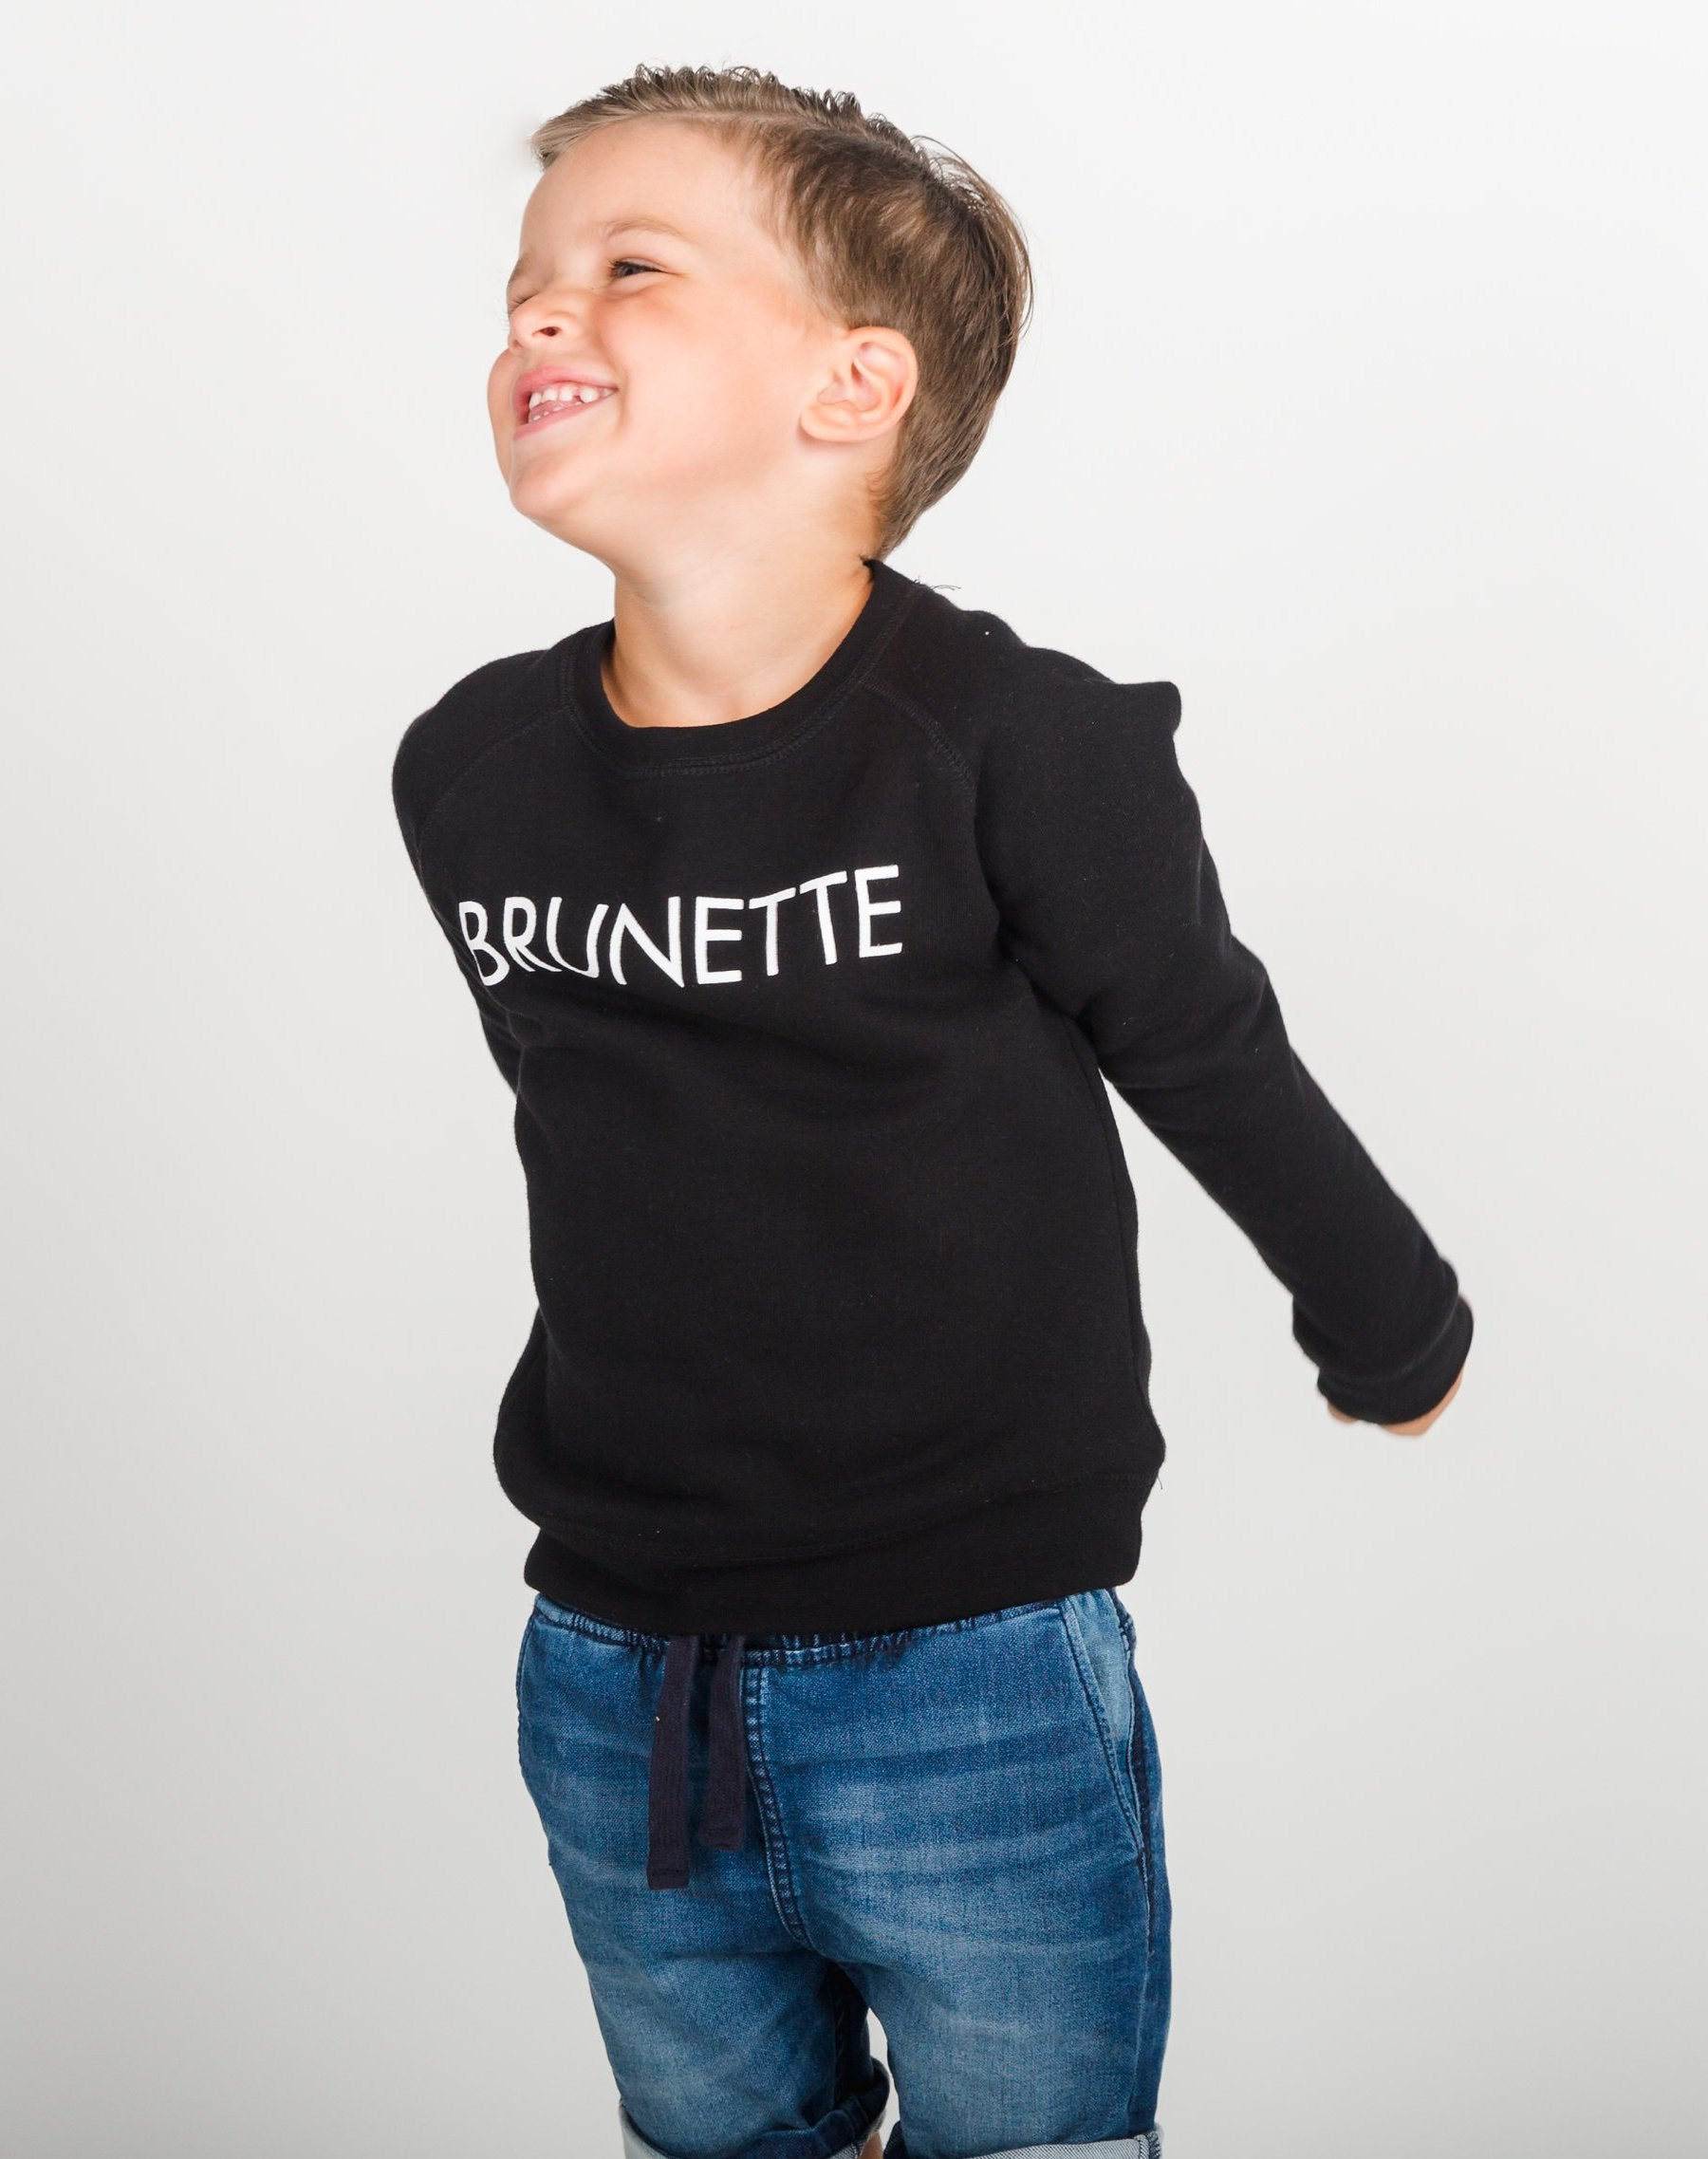 Photo 2 of the Brunette Little Babes classic crew neck sweatshirt in black by Brunette the Label.